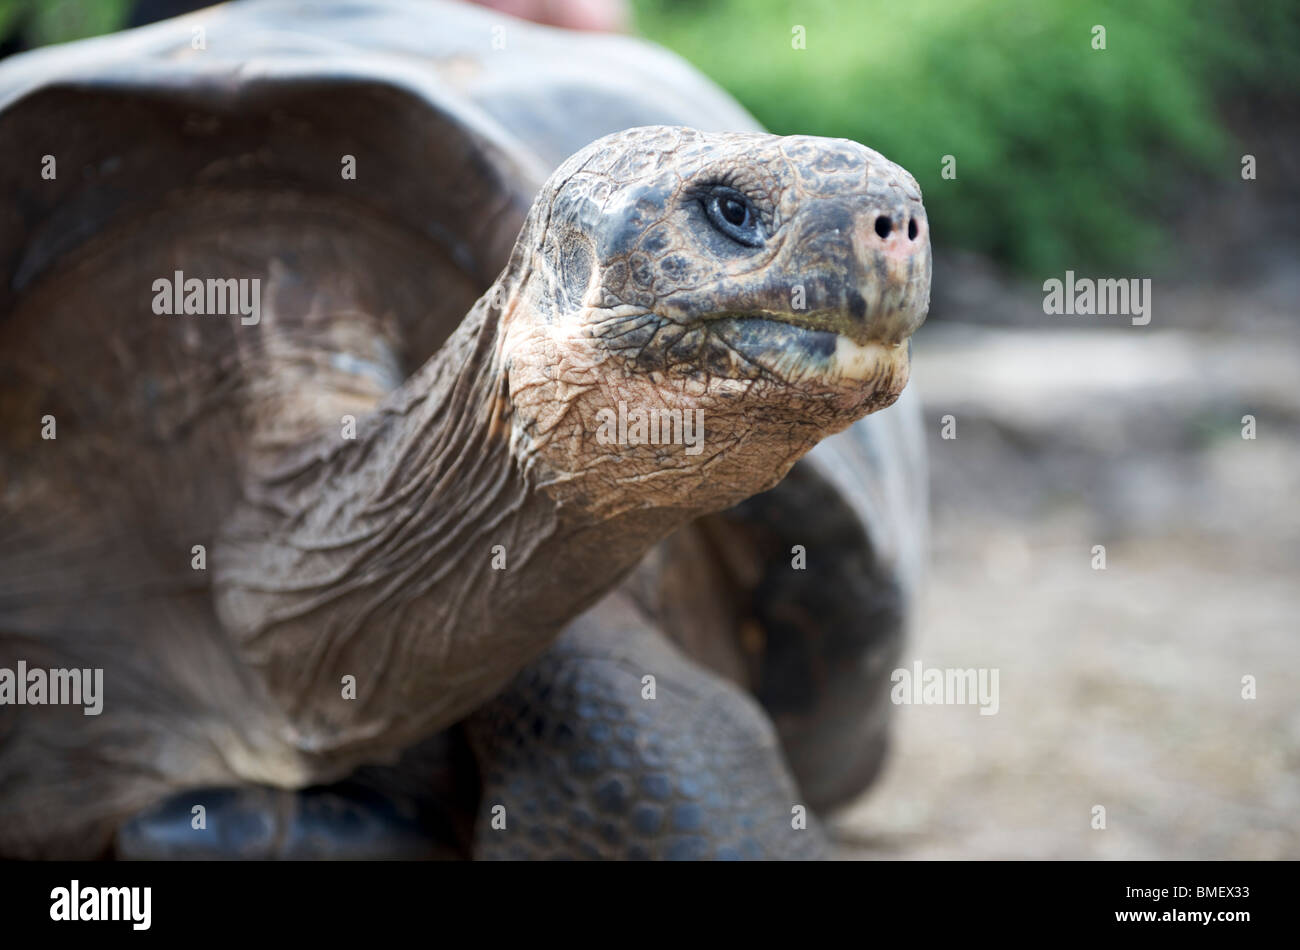 Giant Tortoise (dome-shelled). Charles Darwin Research Station field enclosure, Santa Cruz Island, Galapagos - Stock Image